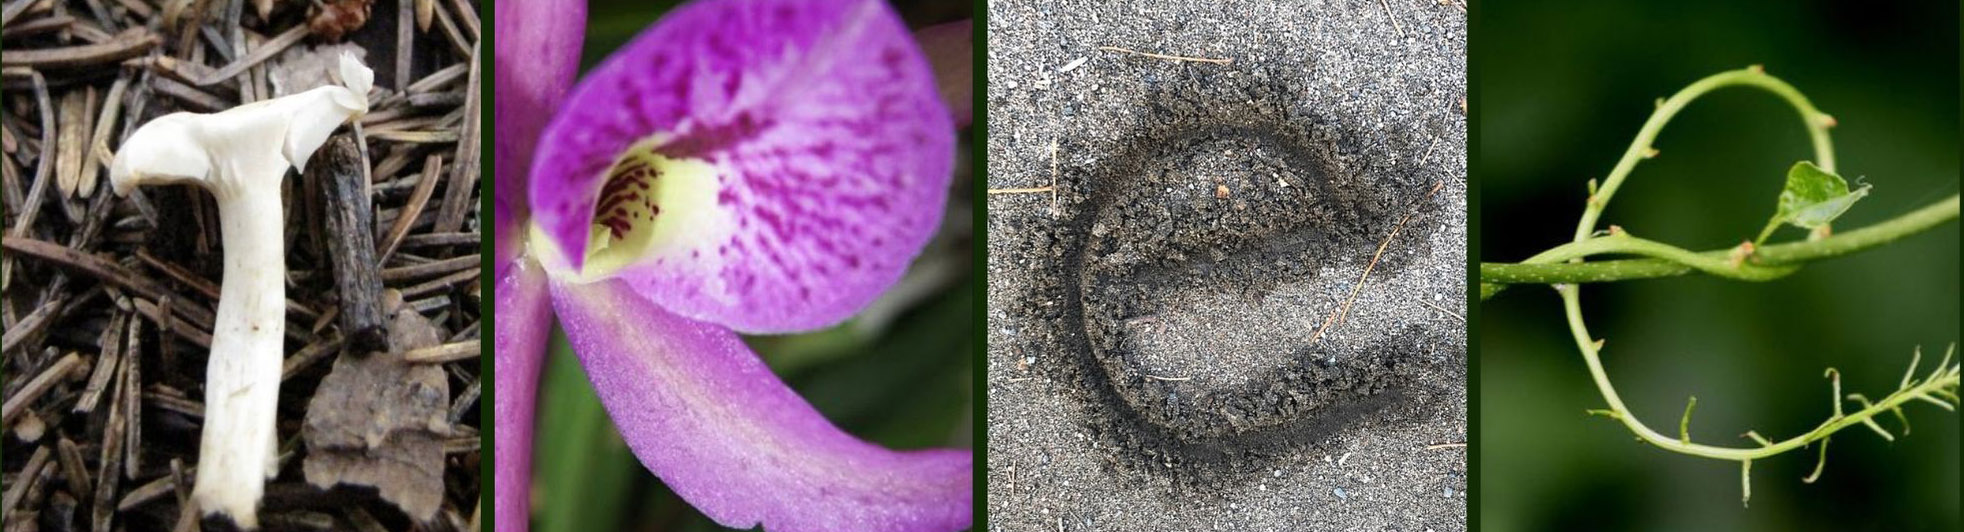 Earthwork written in letters made from nature